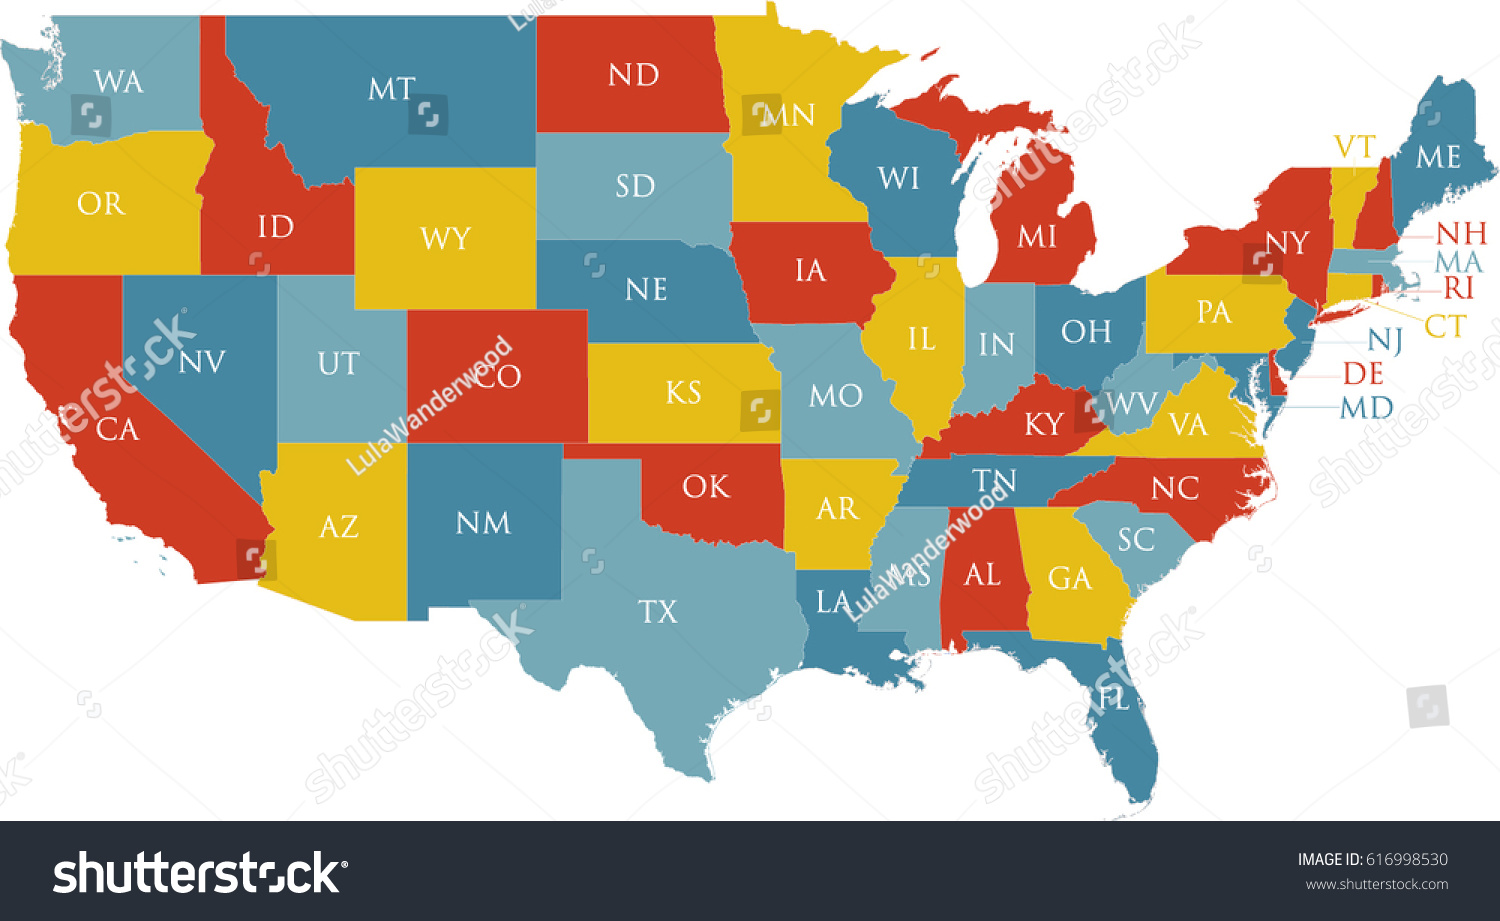 United States Map Labeled Postal Abbreviations Stock Vector Royalty Free 616998530